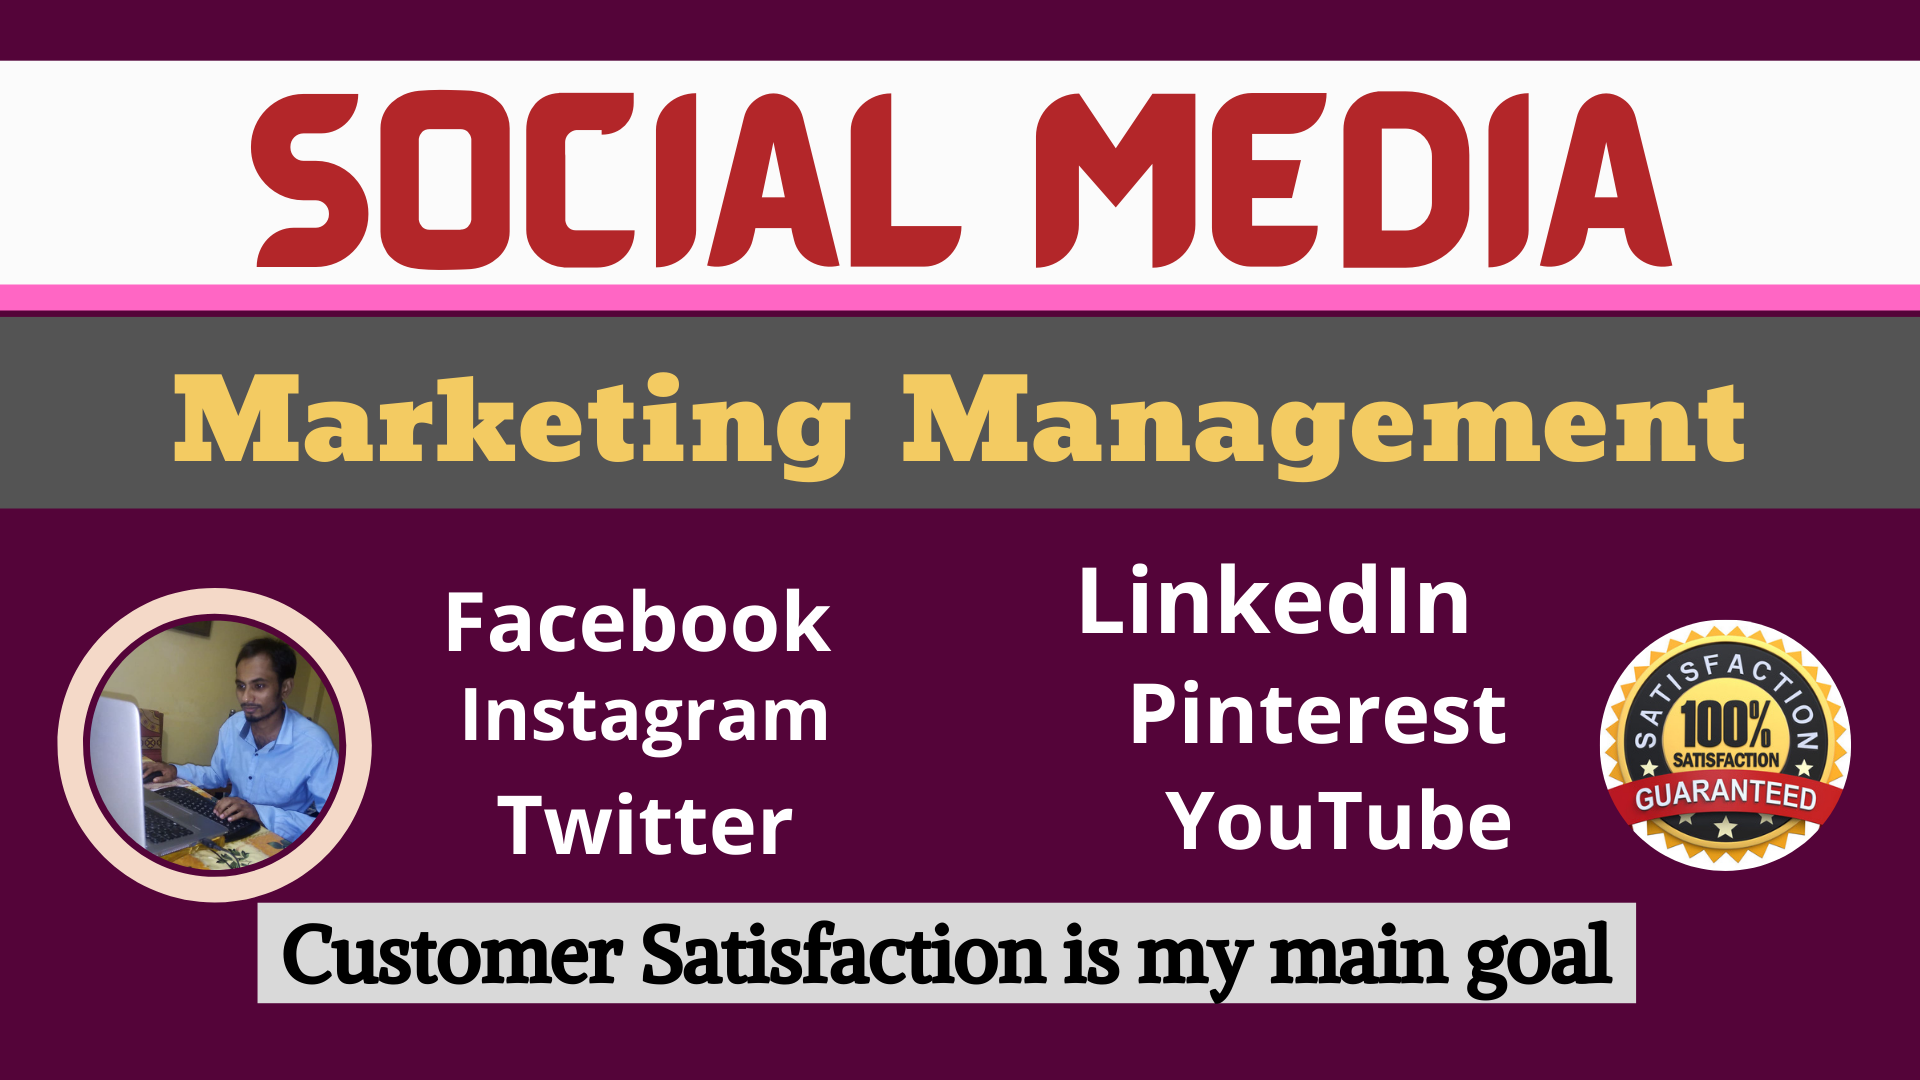 I will be your professional social media management services